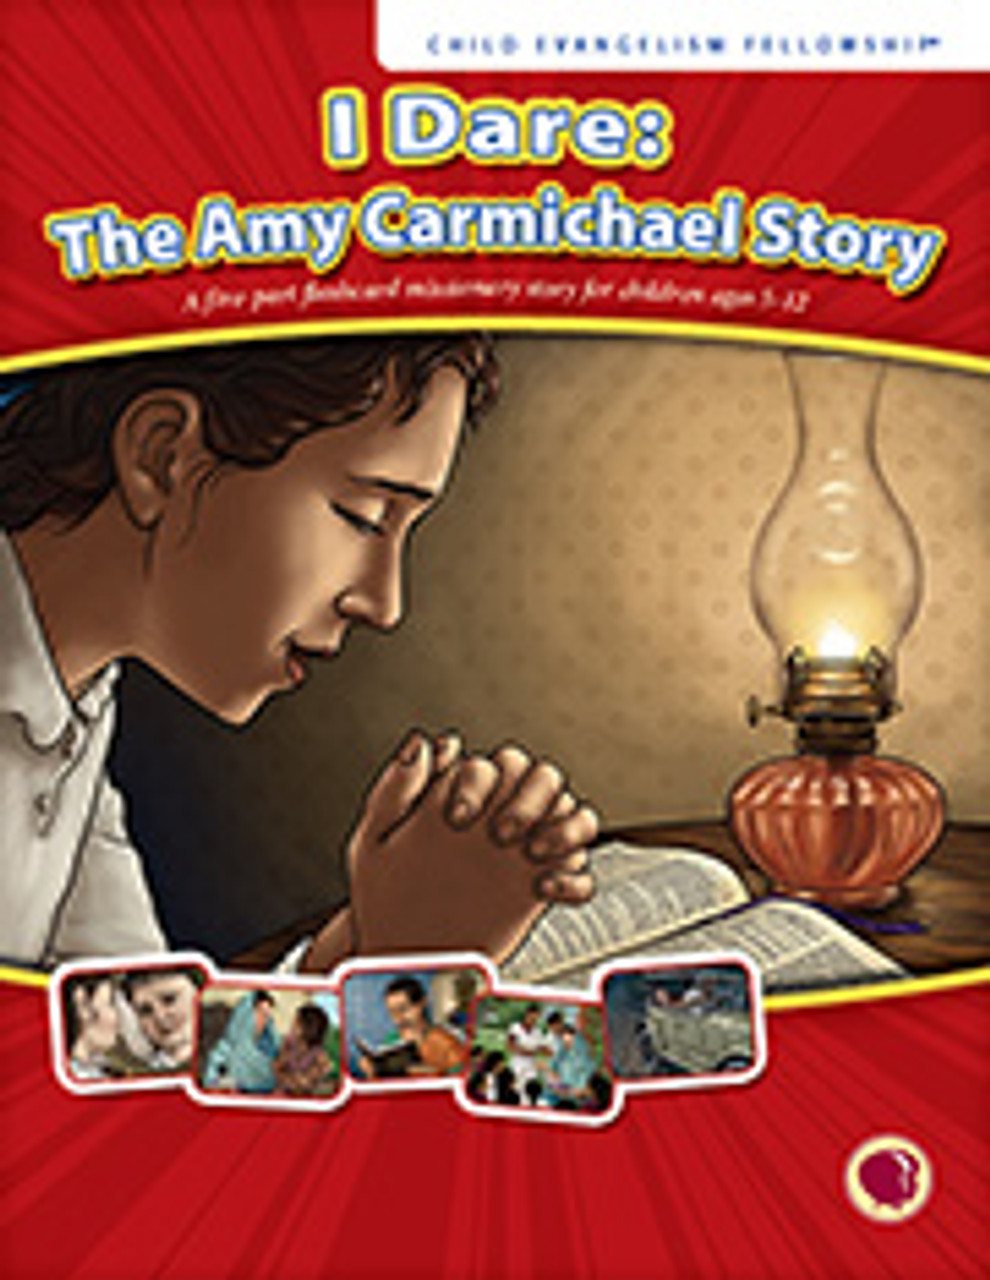 I Dare: The Amy Carmichael Story (text book)